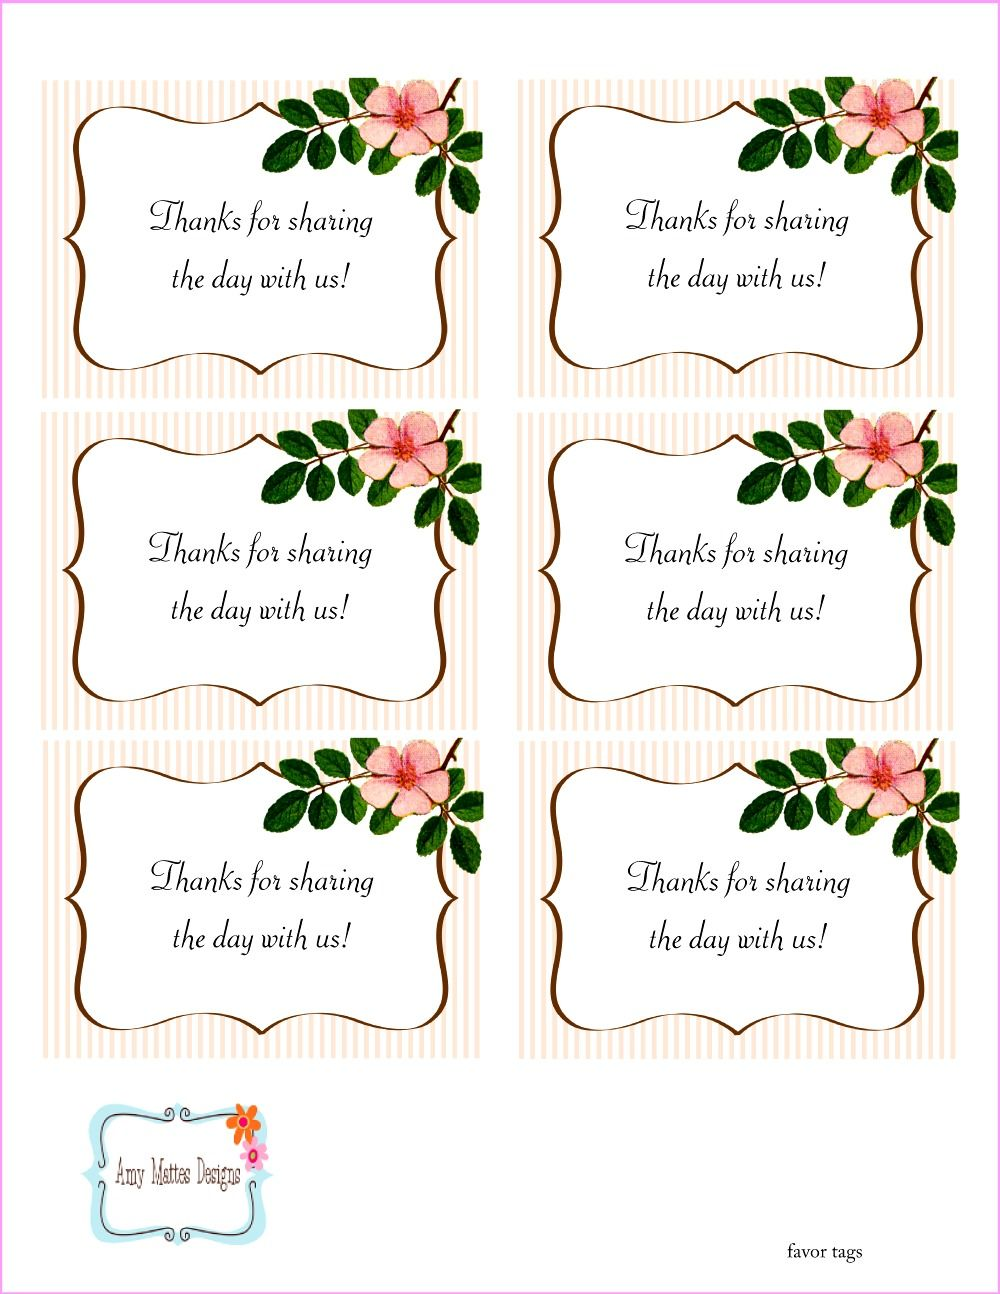 picture about Printable Wedding Favor Tags identify The Interesting Marriage ceremony Choose Tags as our ideny: cost-free